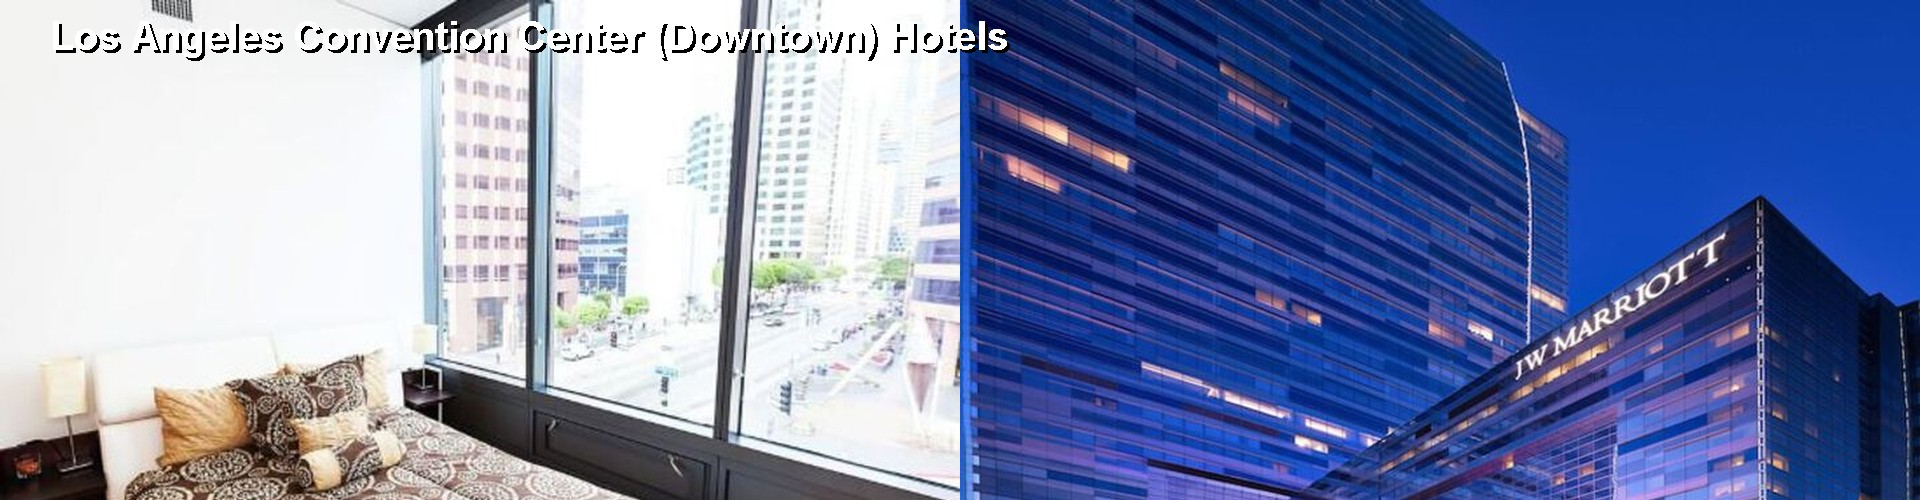 5 Best Hotels Near Los Angeles Convention Center Downtown